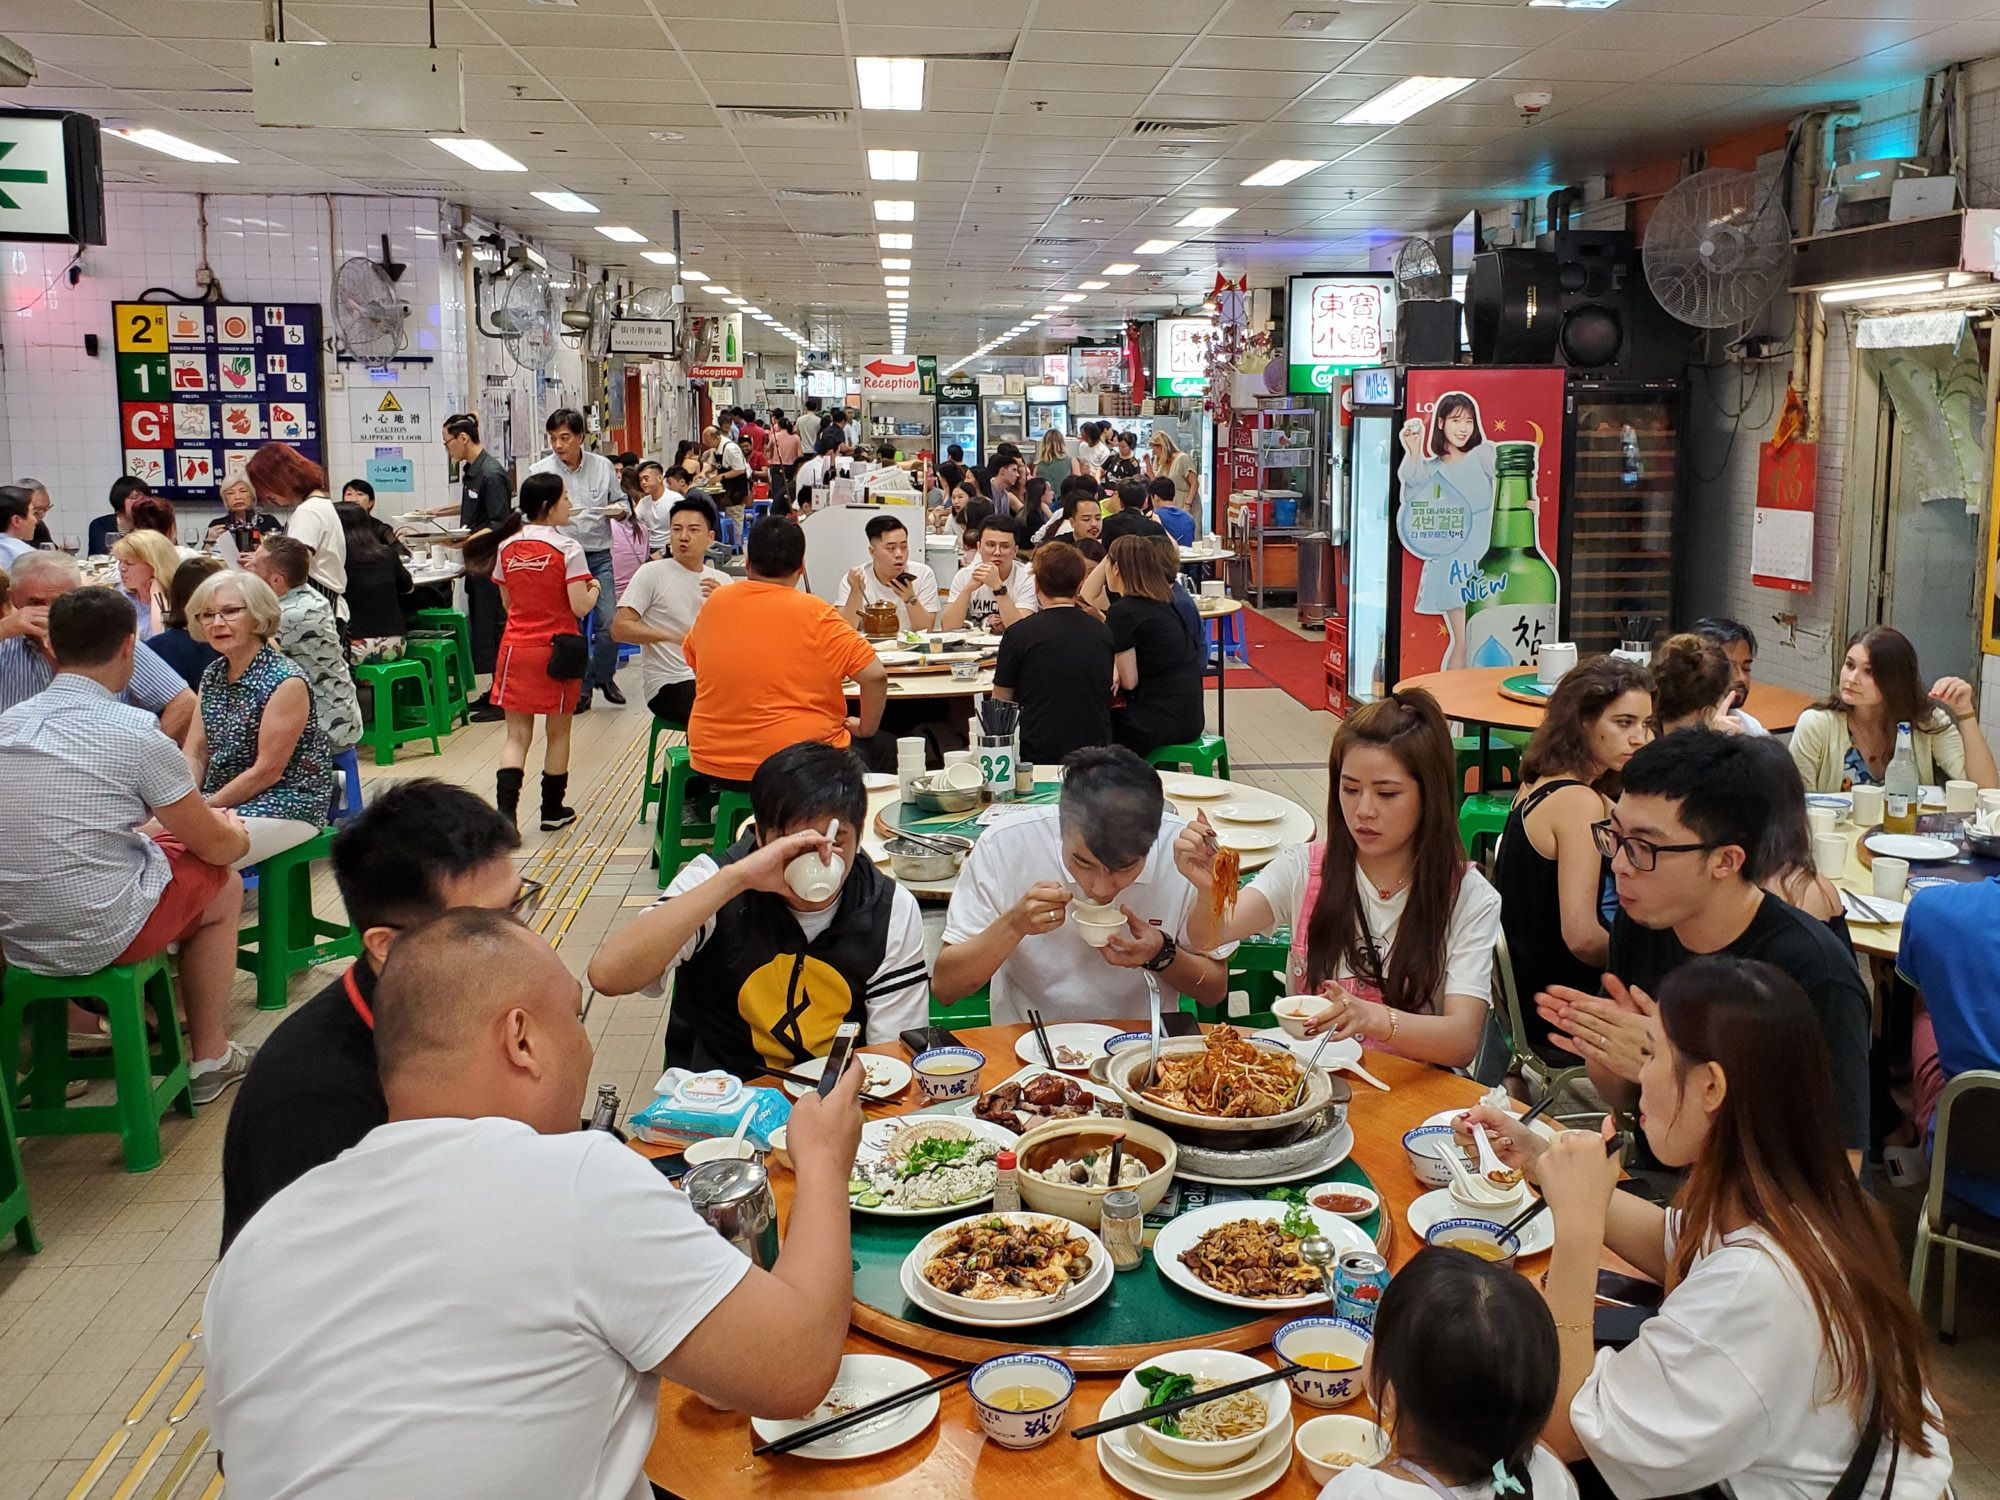 dong po AKA tung po kitchen shown here with tons of locals enjoying the classic cantonese food